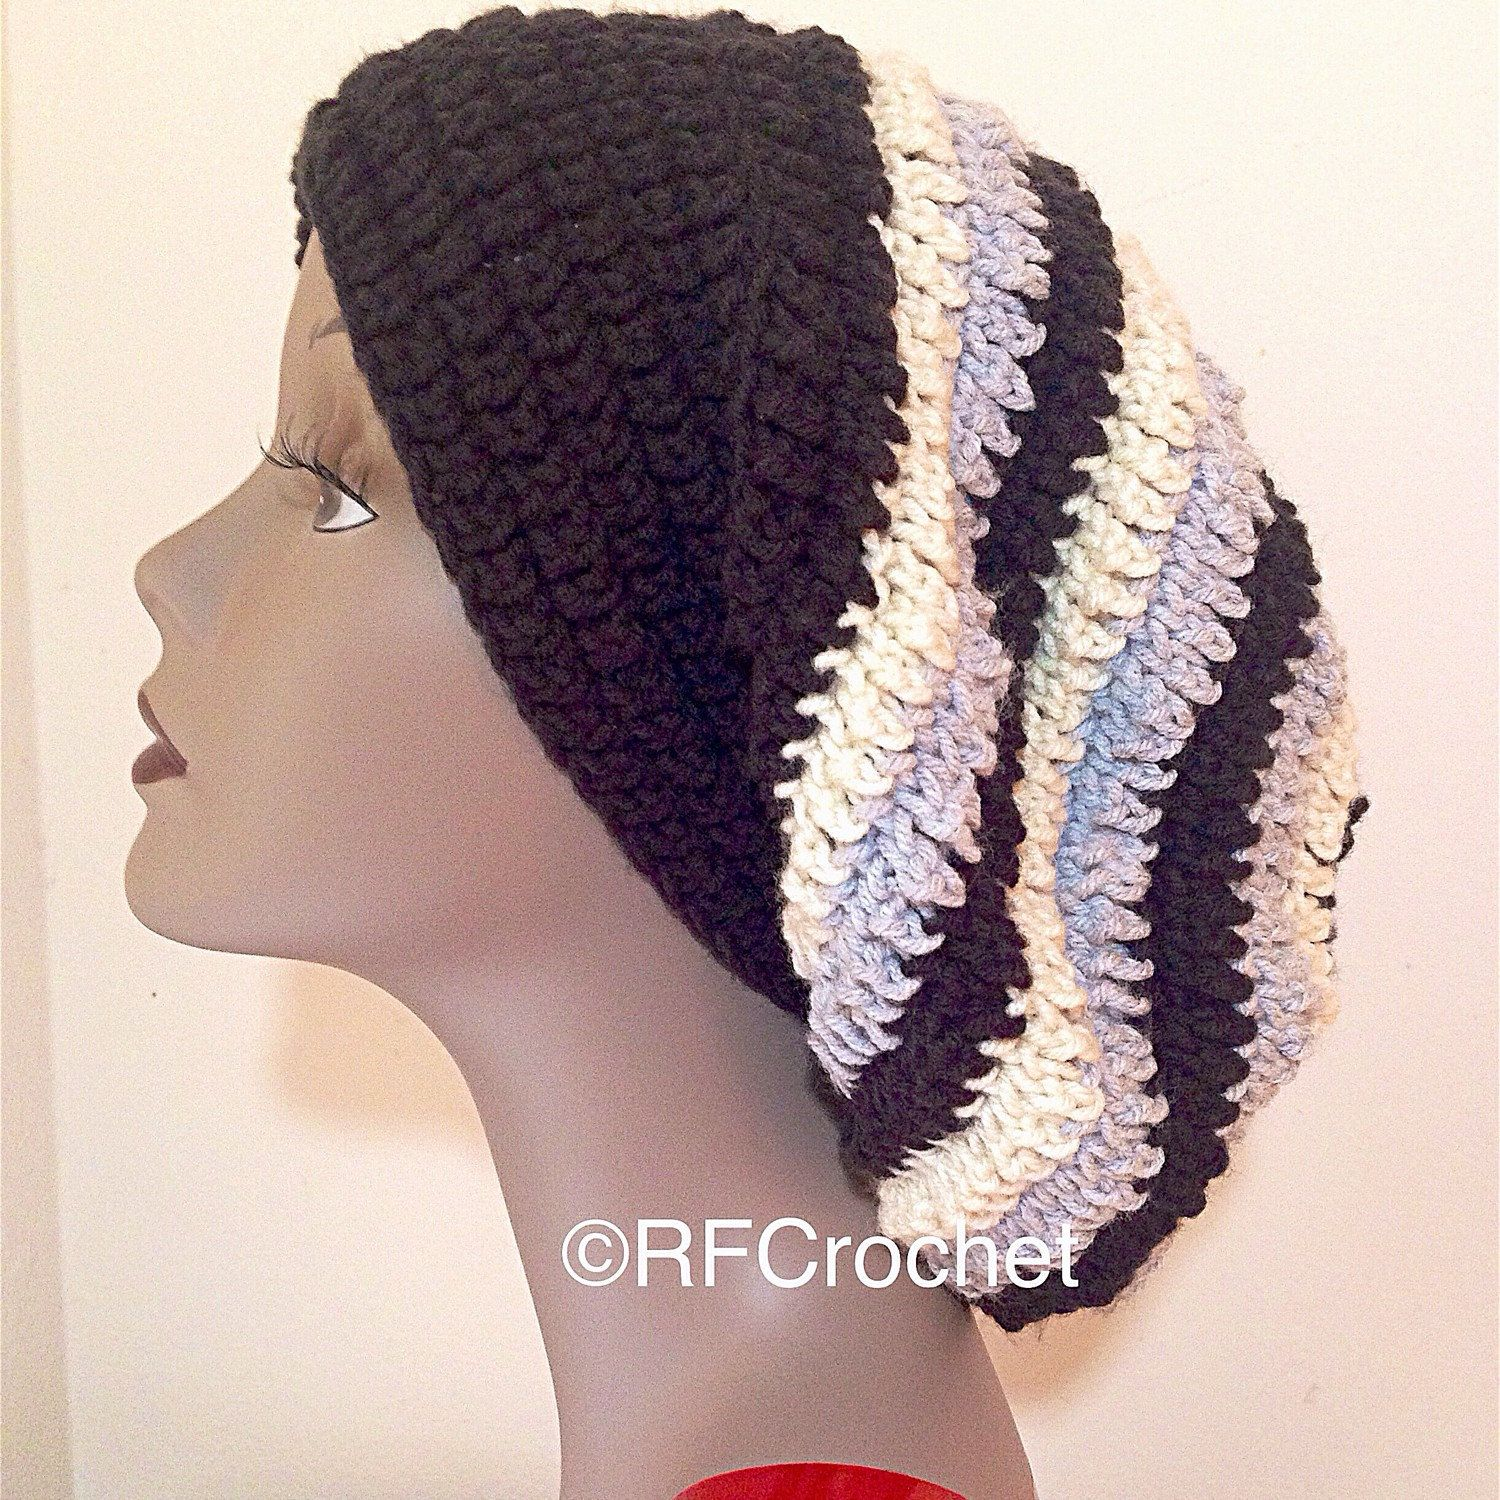 f7f3ec1dc XL Slouchy Beanie in Black, Off White and Light Gray | Free USA ...